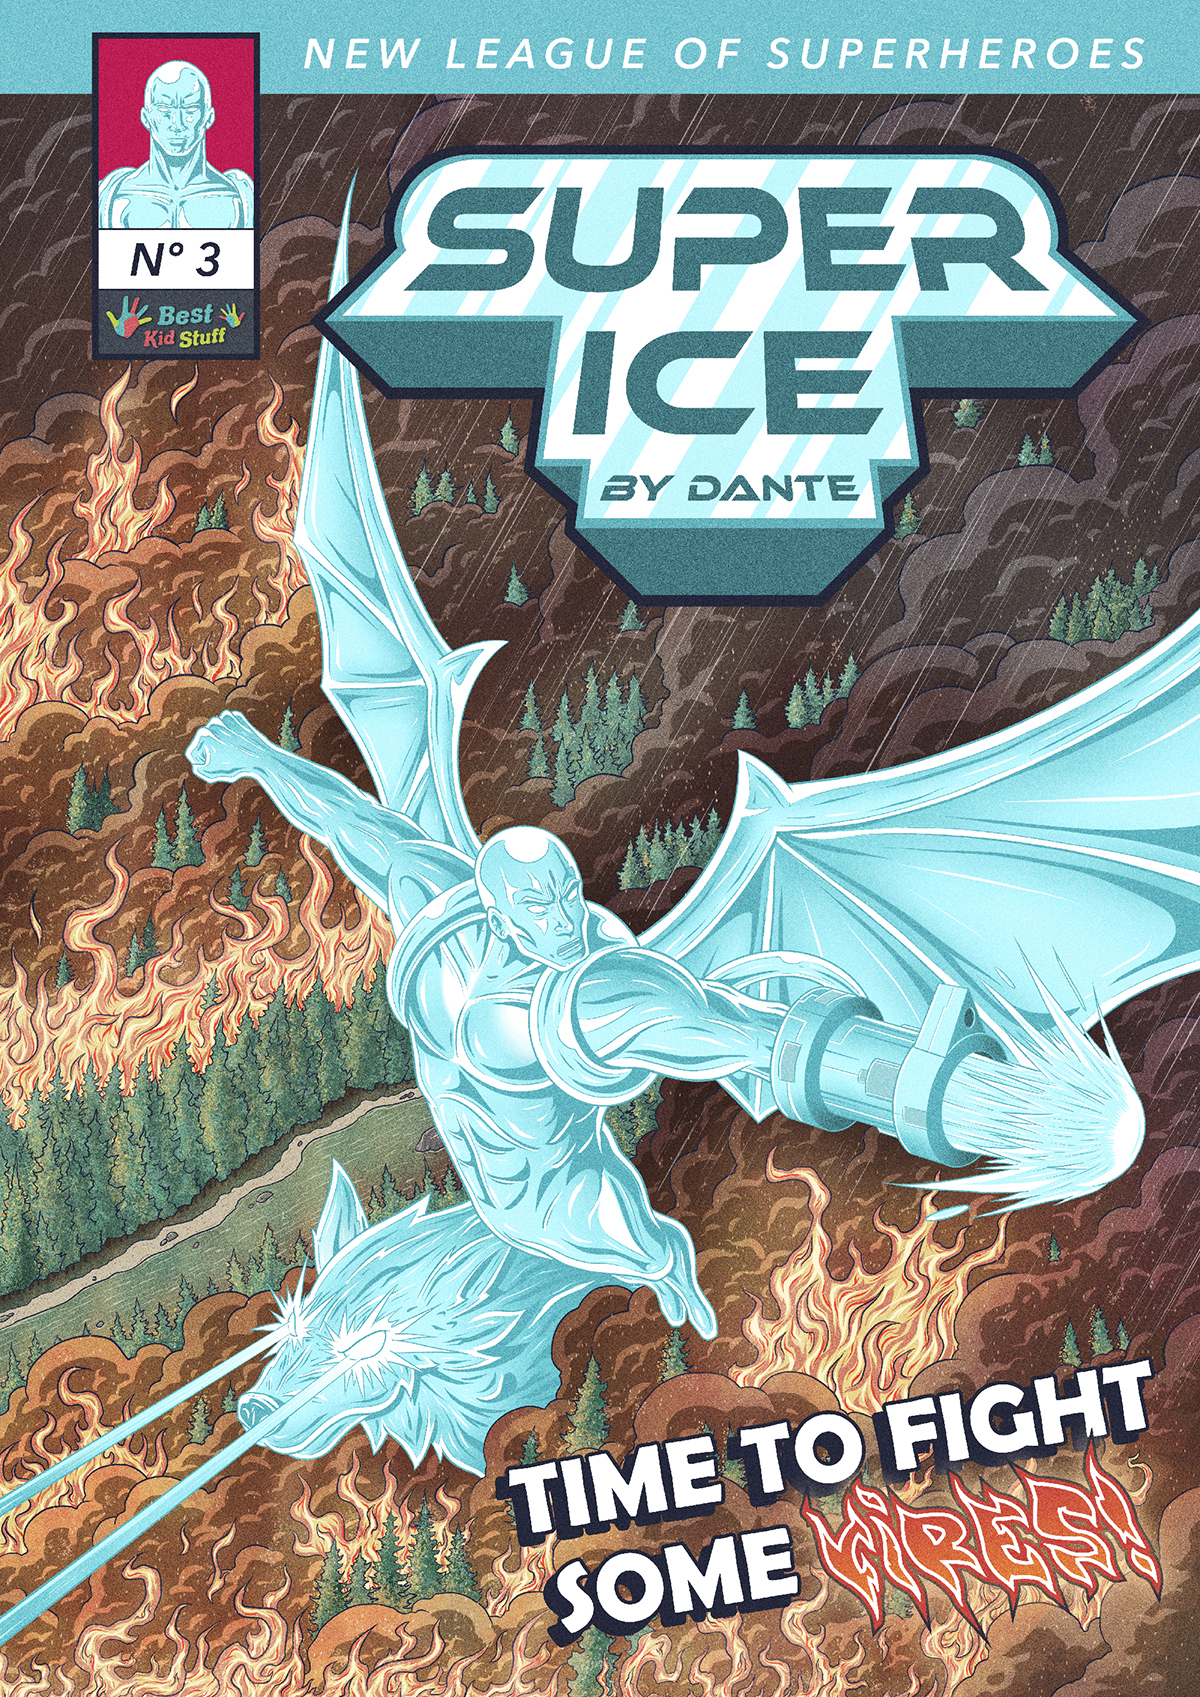 03 New League of Superheroes Super Ice